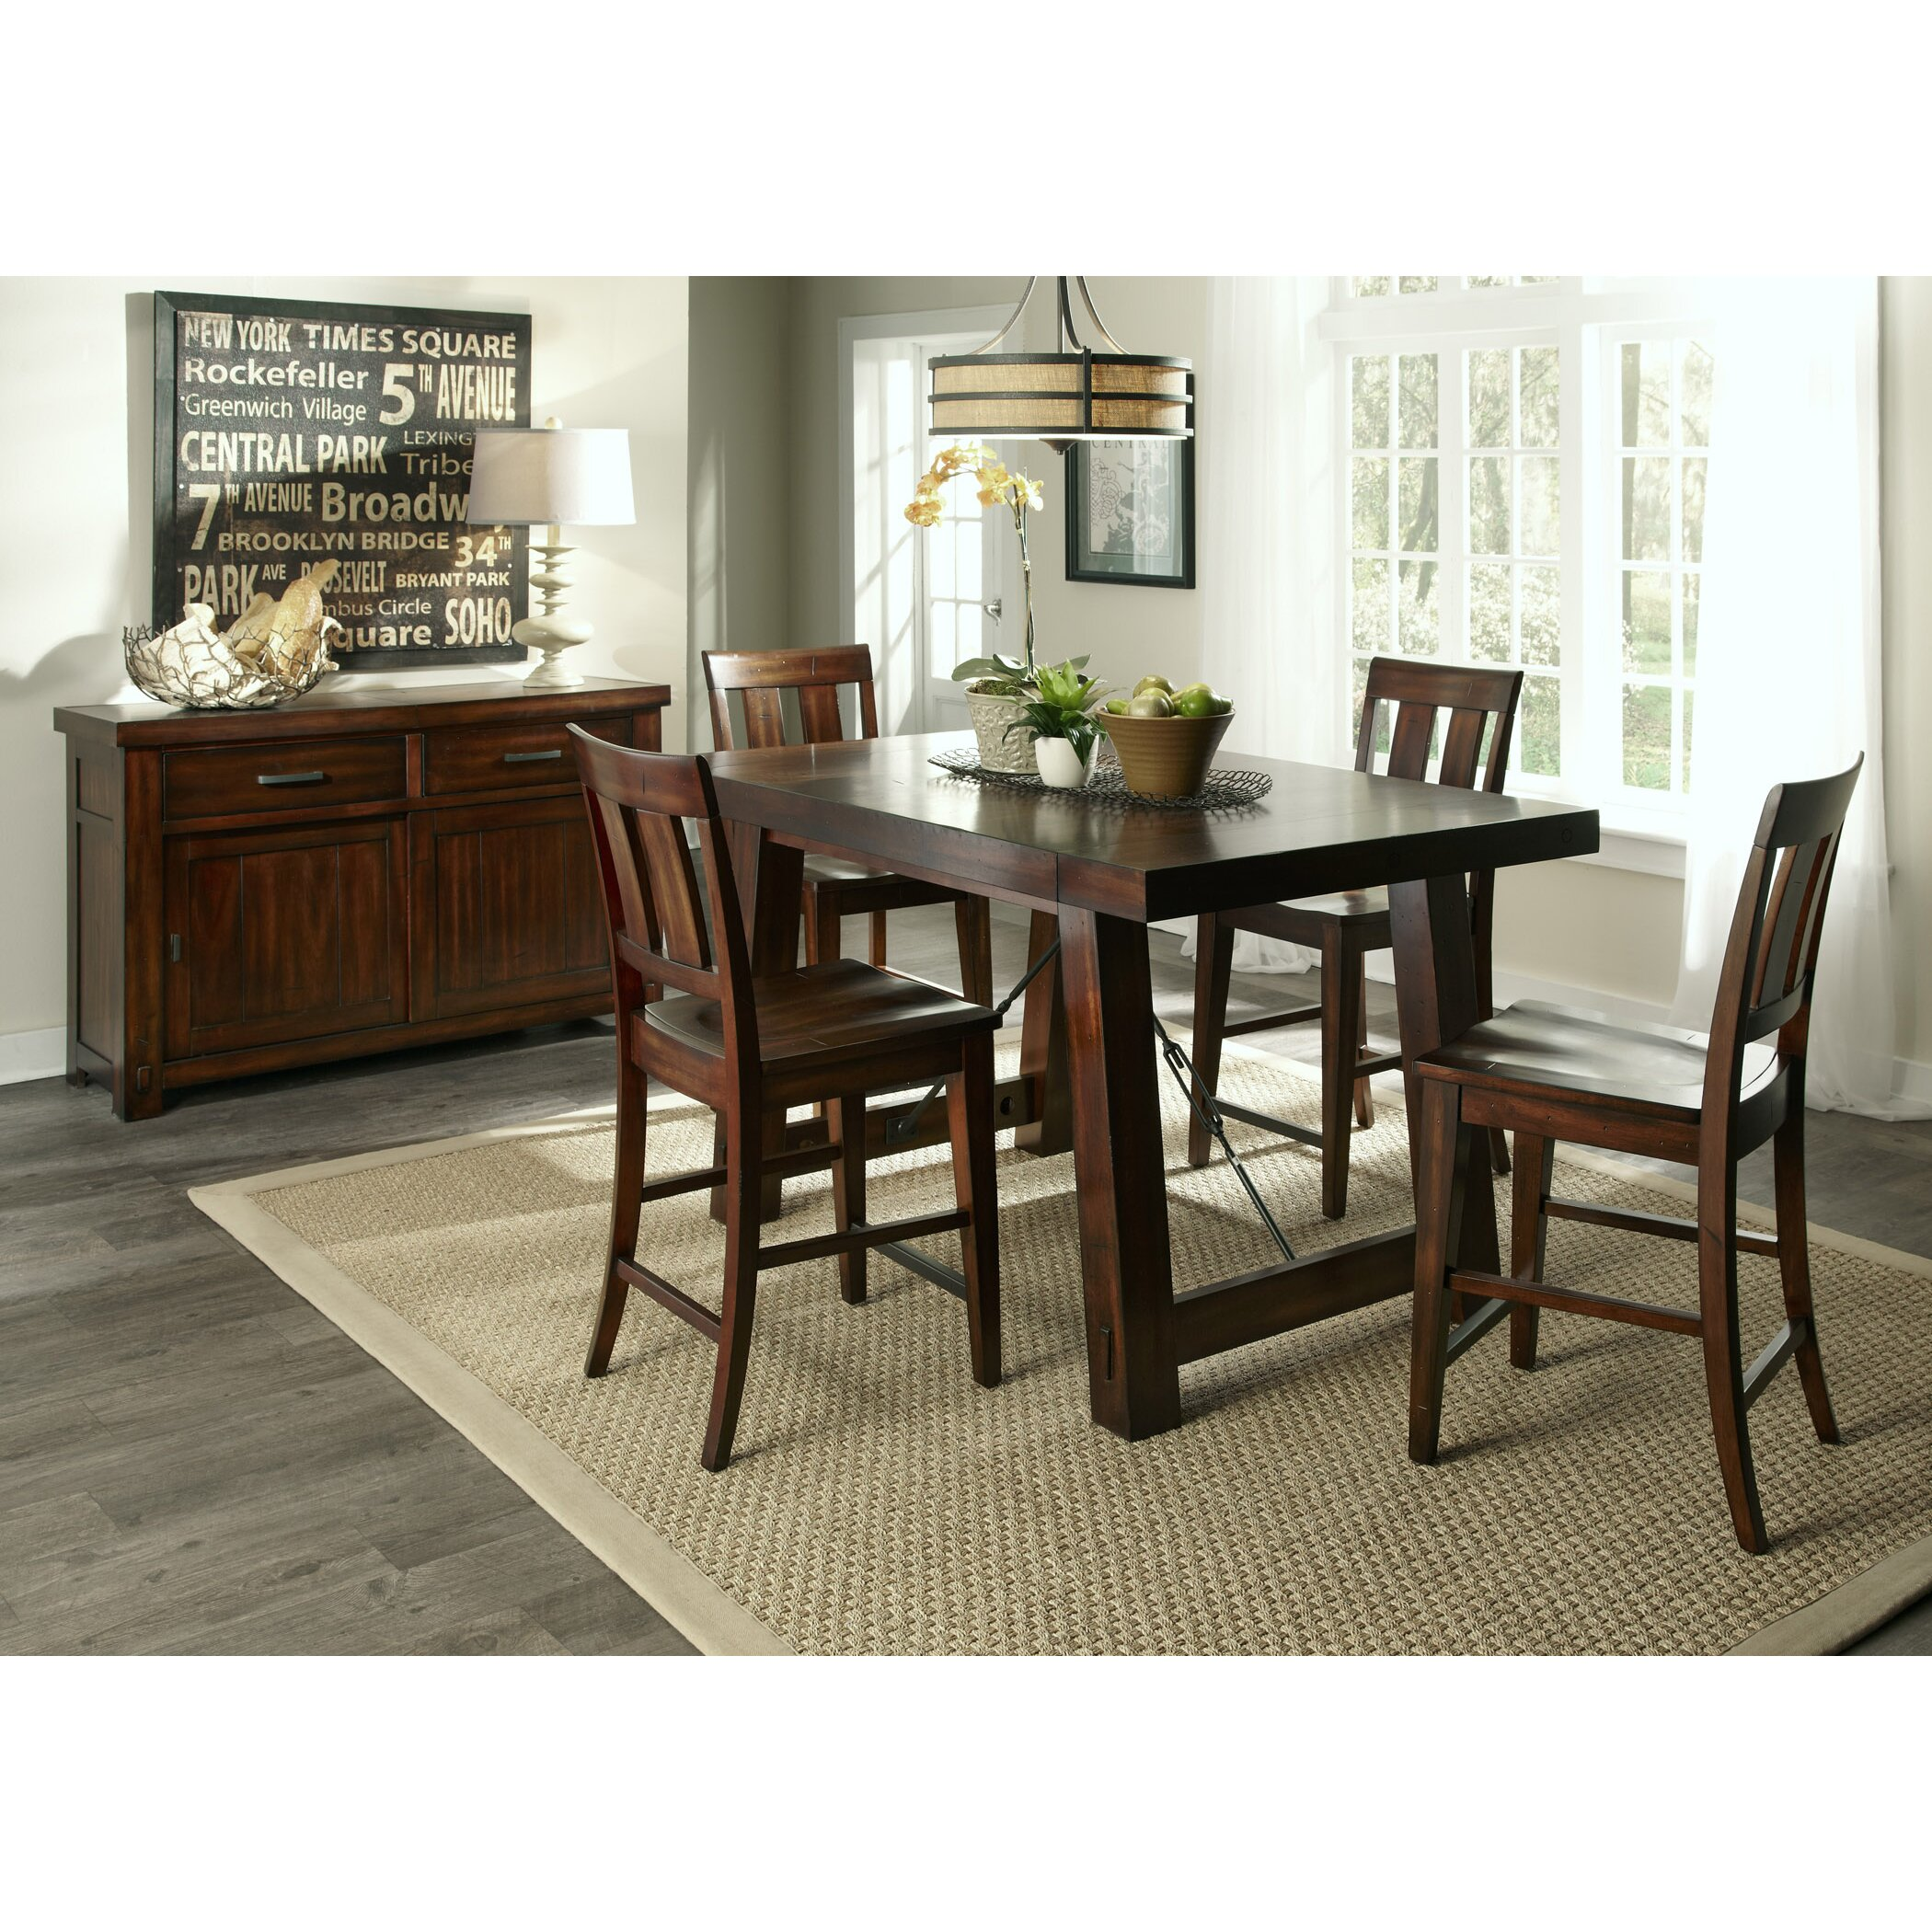 Livingston Counter Height Dining Table